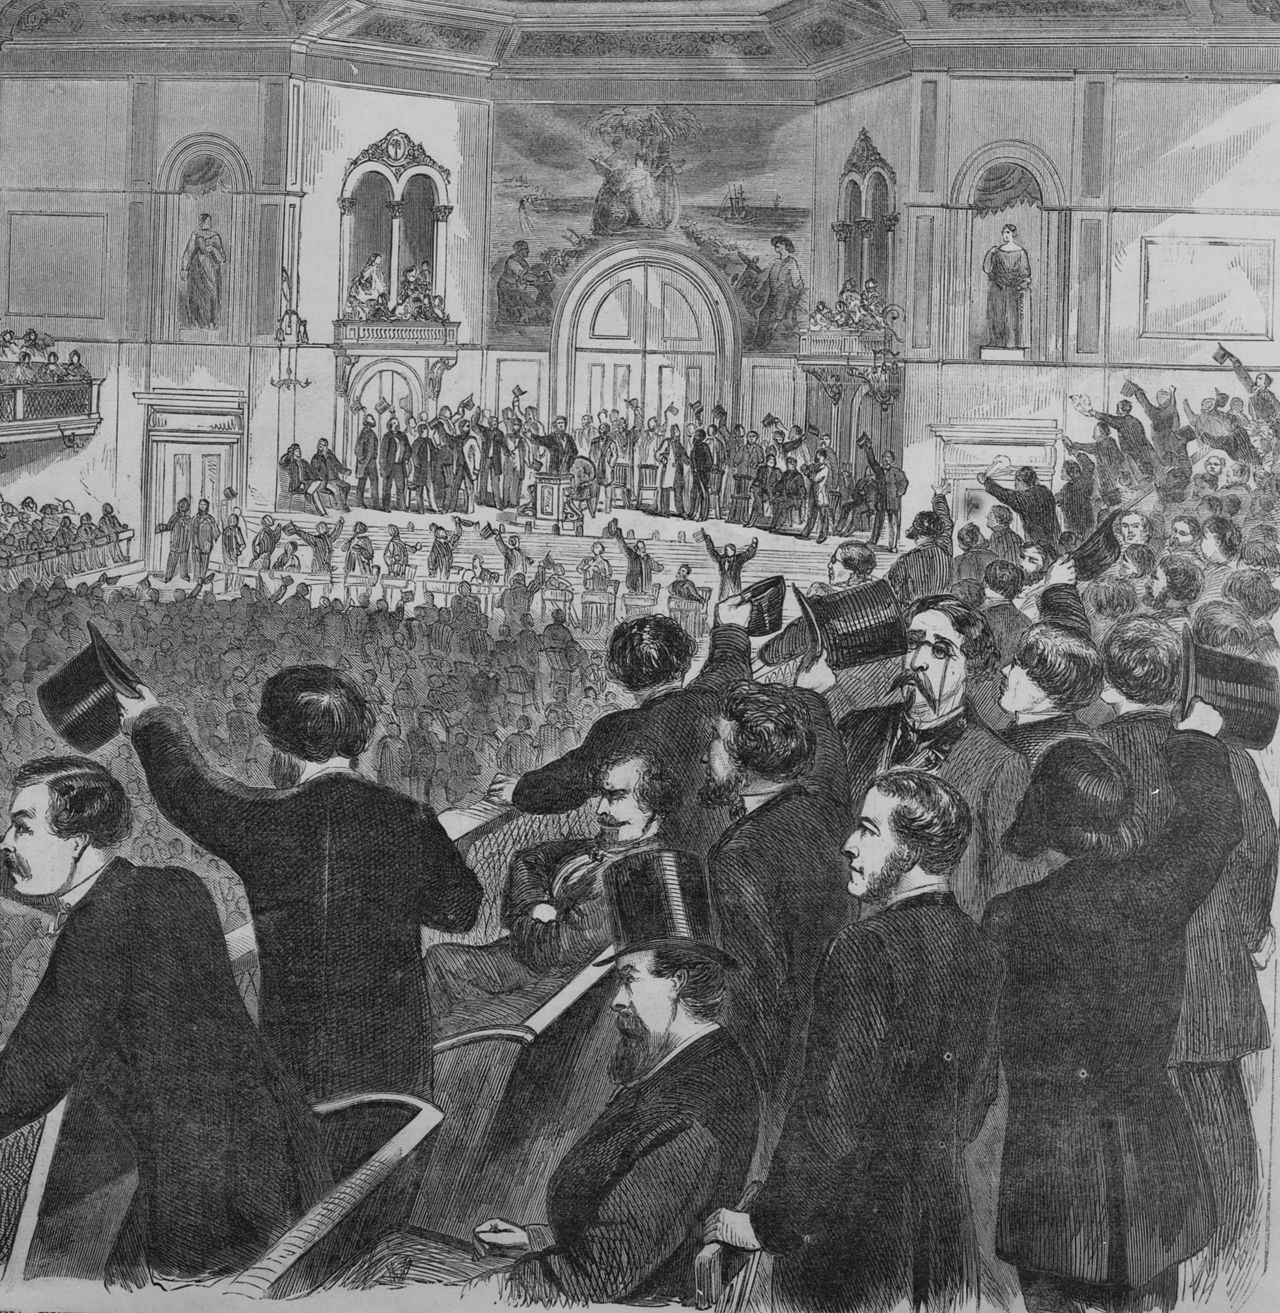 Democratic National Convention - 1860